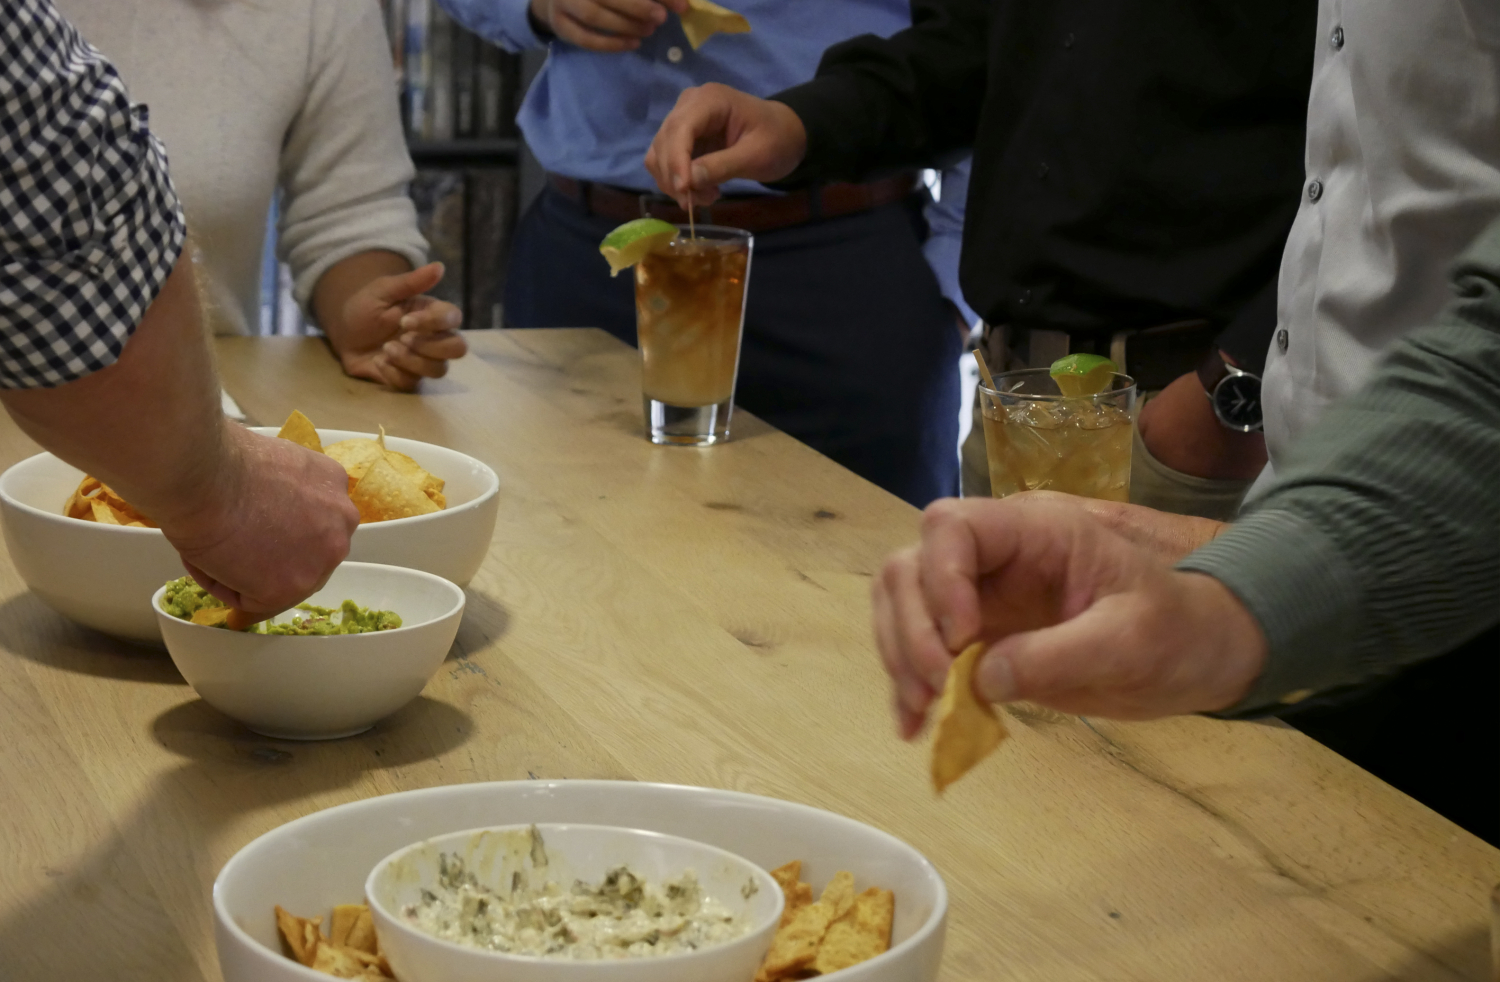 Detail shot of bowls of chips, guacamole, and dip; people standing around table eating and drinking cocktails.